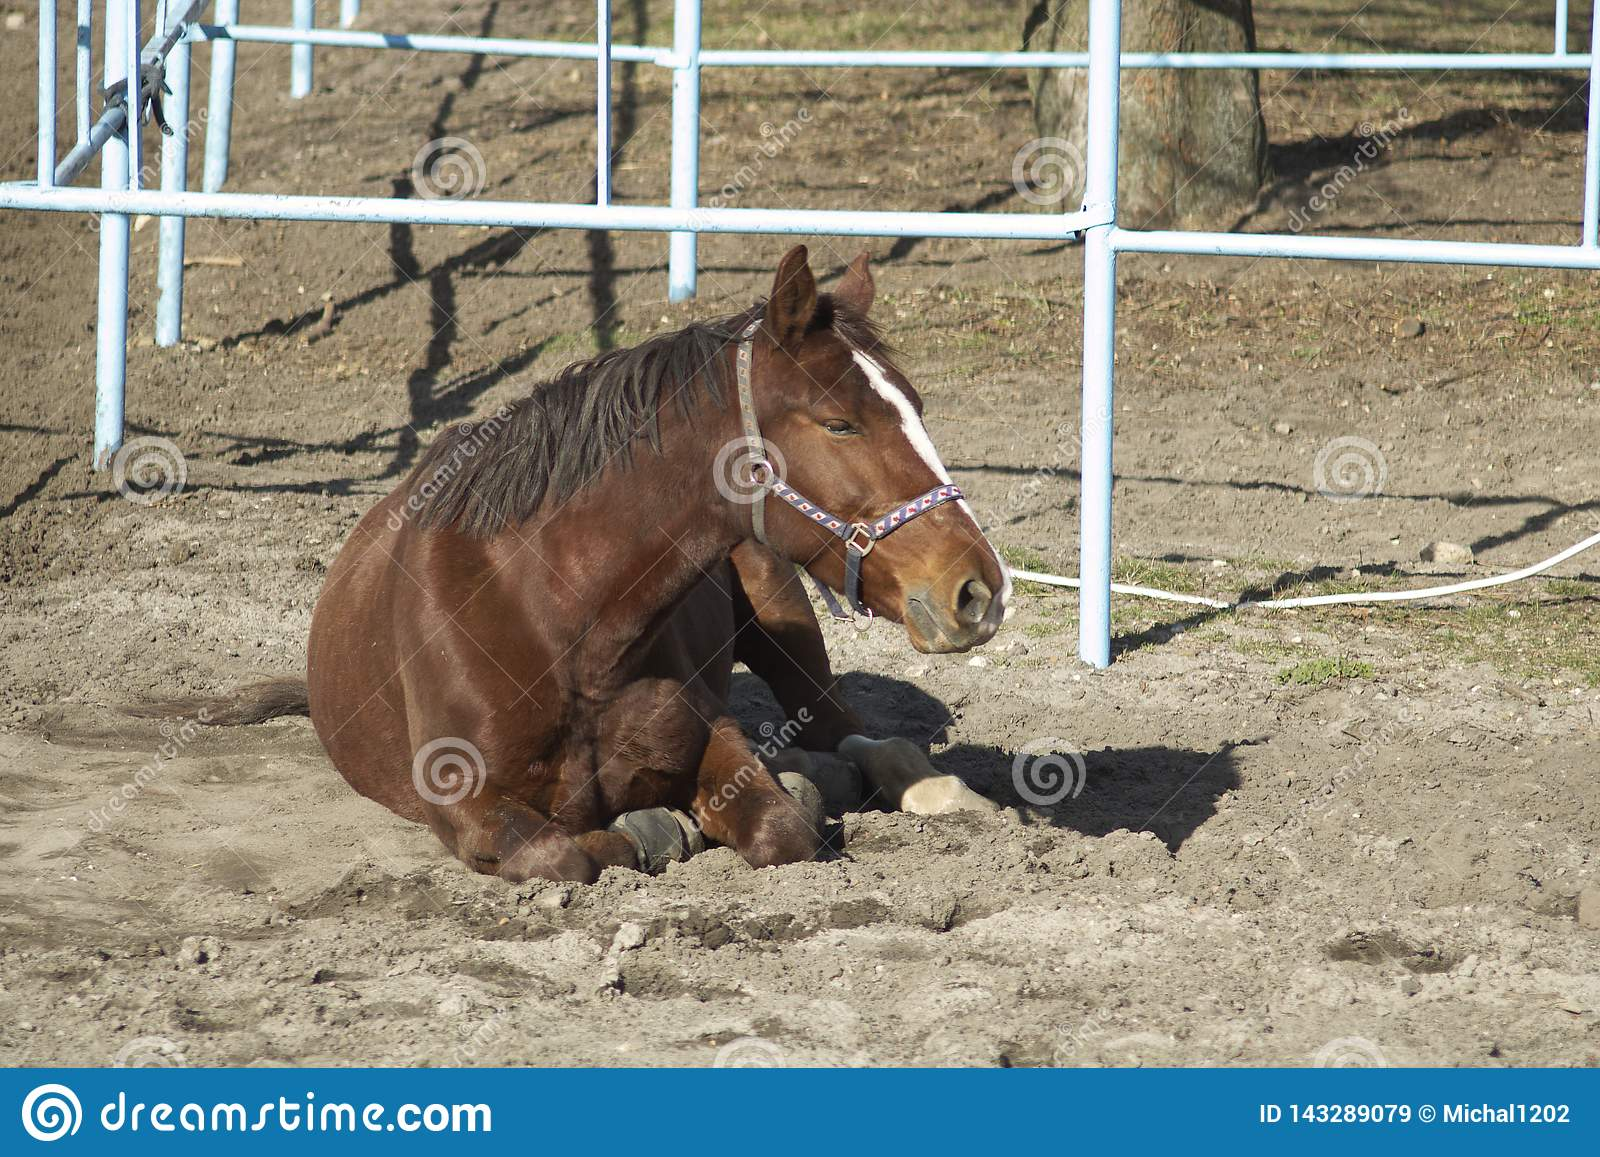 The horse is resting in the pasture.